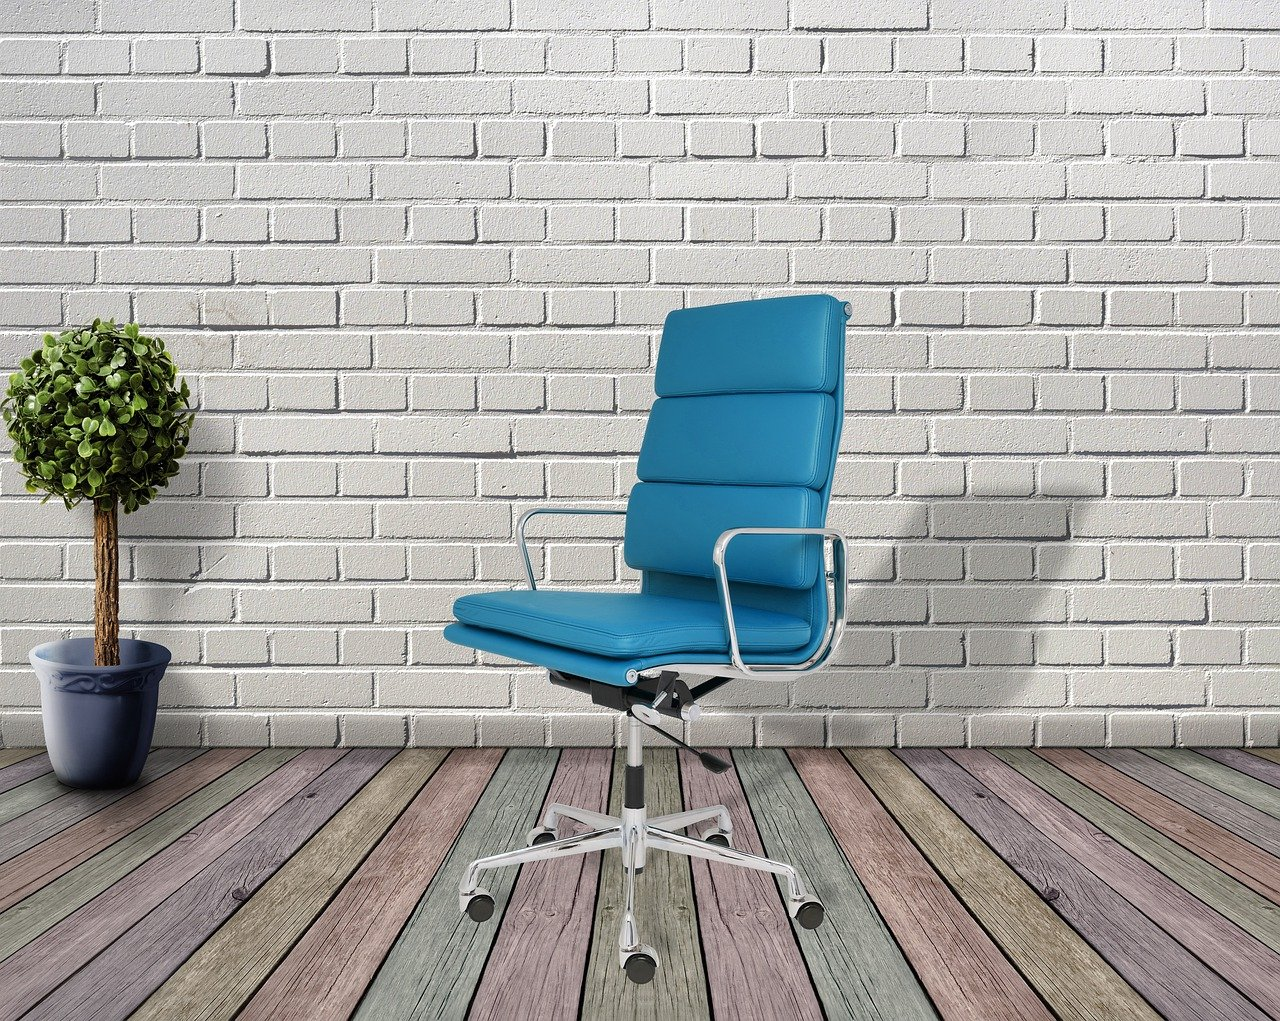 A blue office chair on a wooden floor